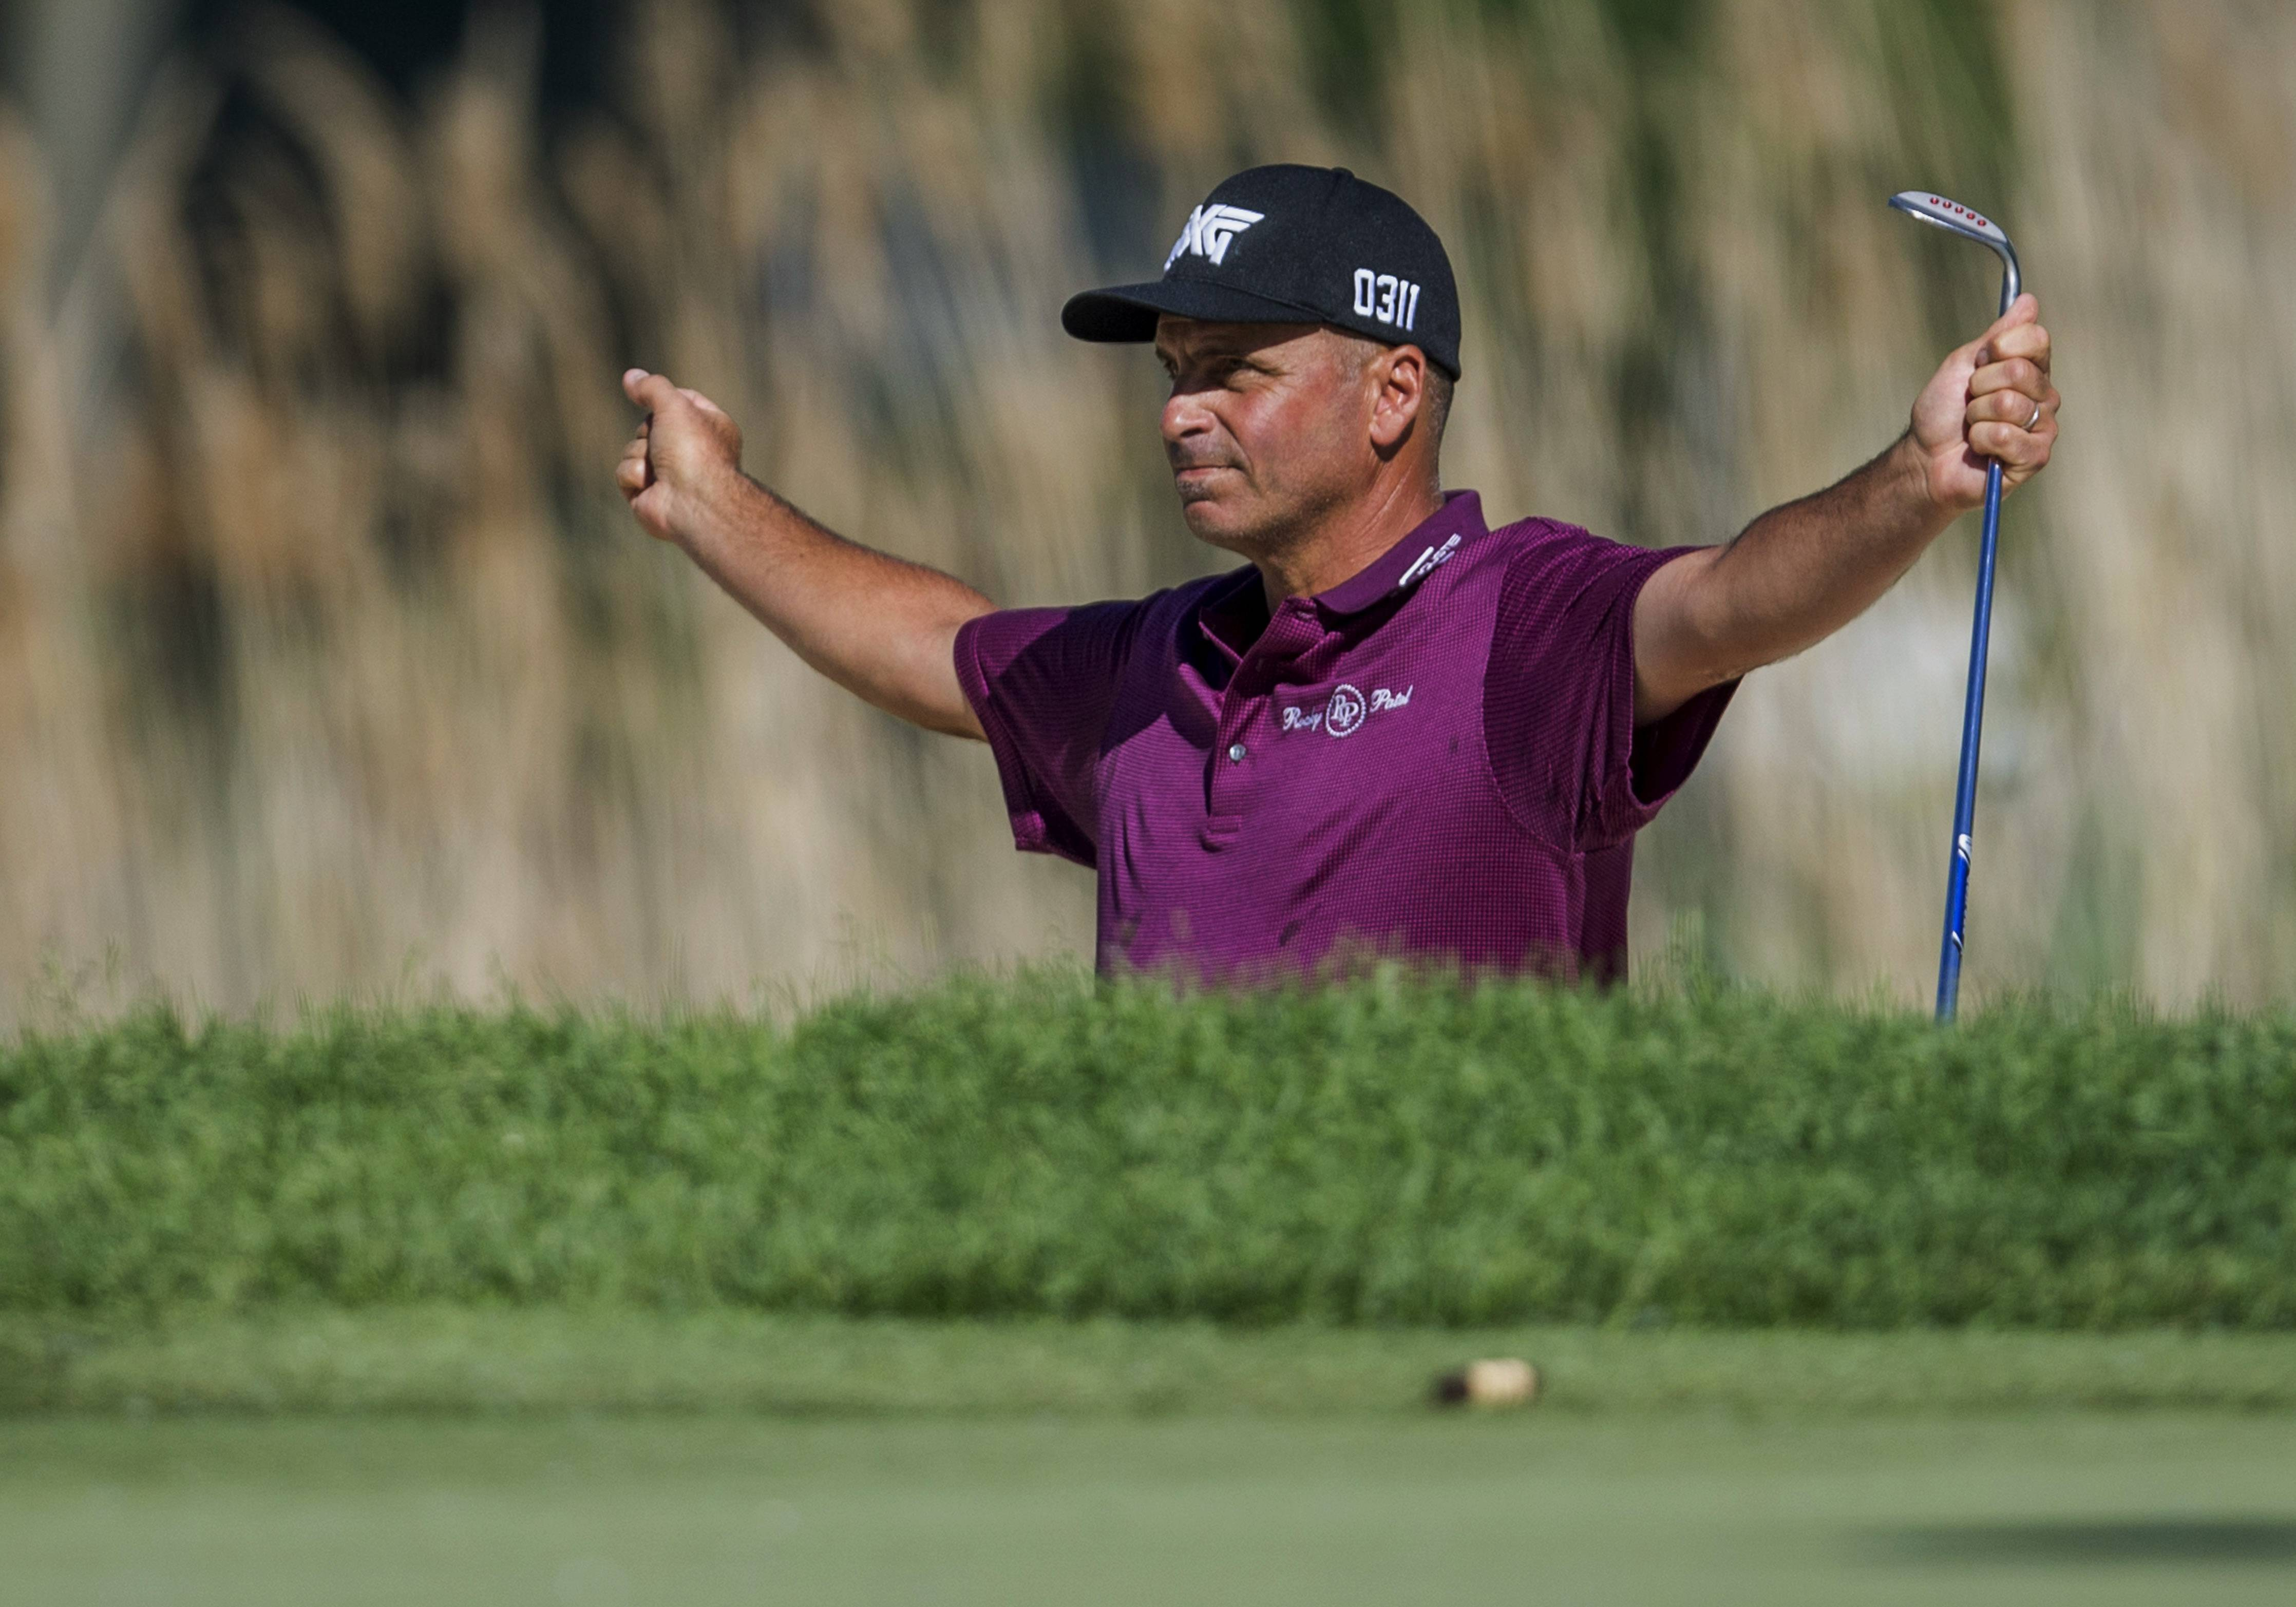 Rocco Mediate celebrates after sinking a shot from the bunker for a birdie on the 17th hole during the final round of the Senior PGA Championship golf tournament at Harbor Shores Golf Club in Benton Harbor, Mich., Sunday, May 29, 2016. Mediate won with a score of 19 under.